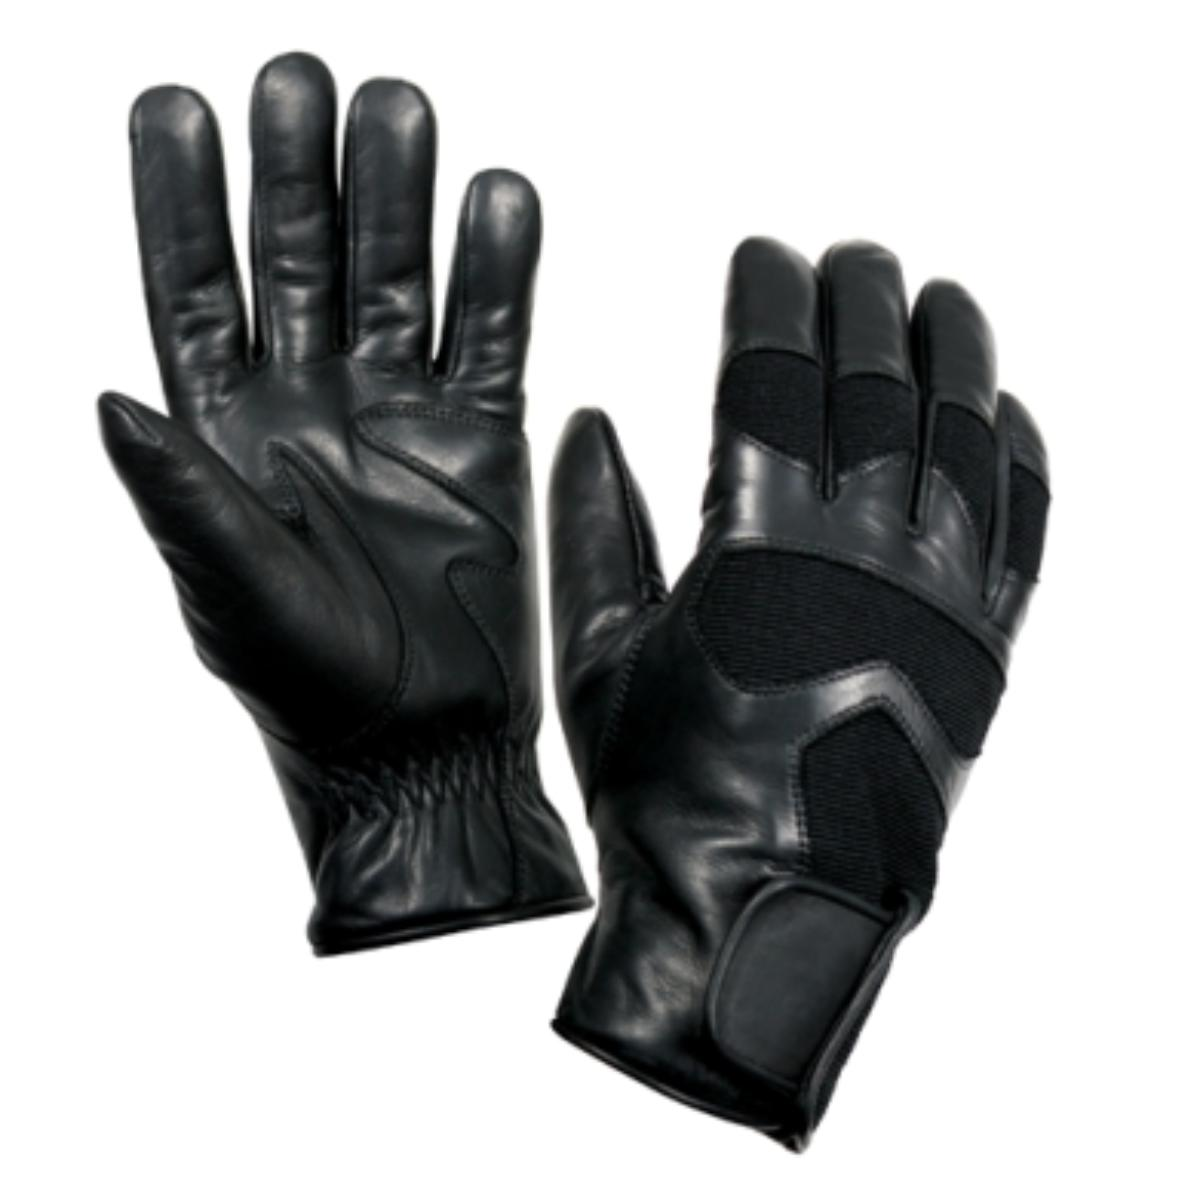 Rothco 4480 Cold Weather Shooting Gloves provide Warmth, Grip and Flexibility